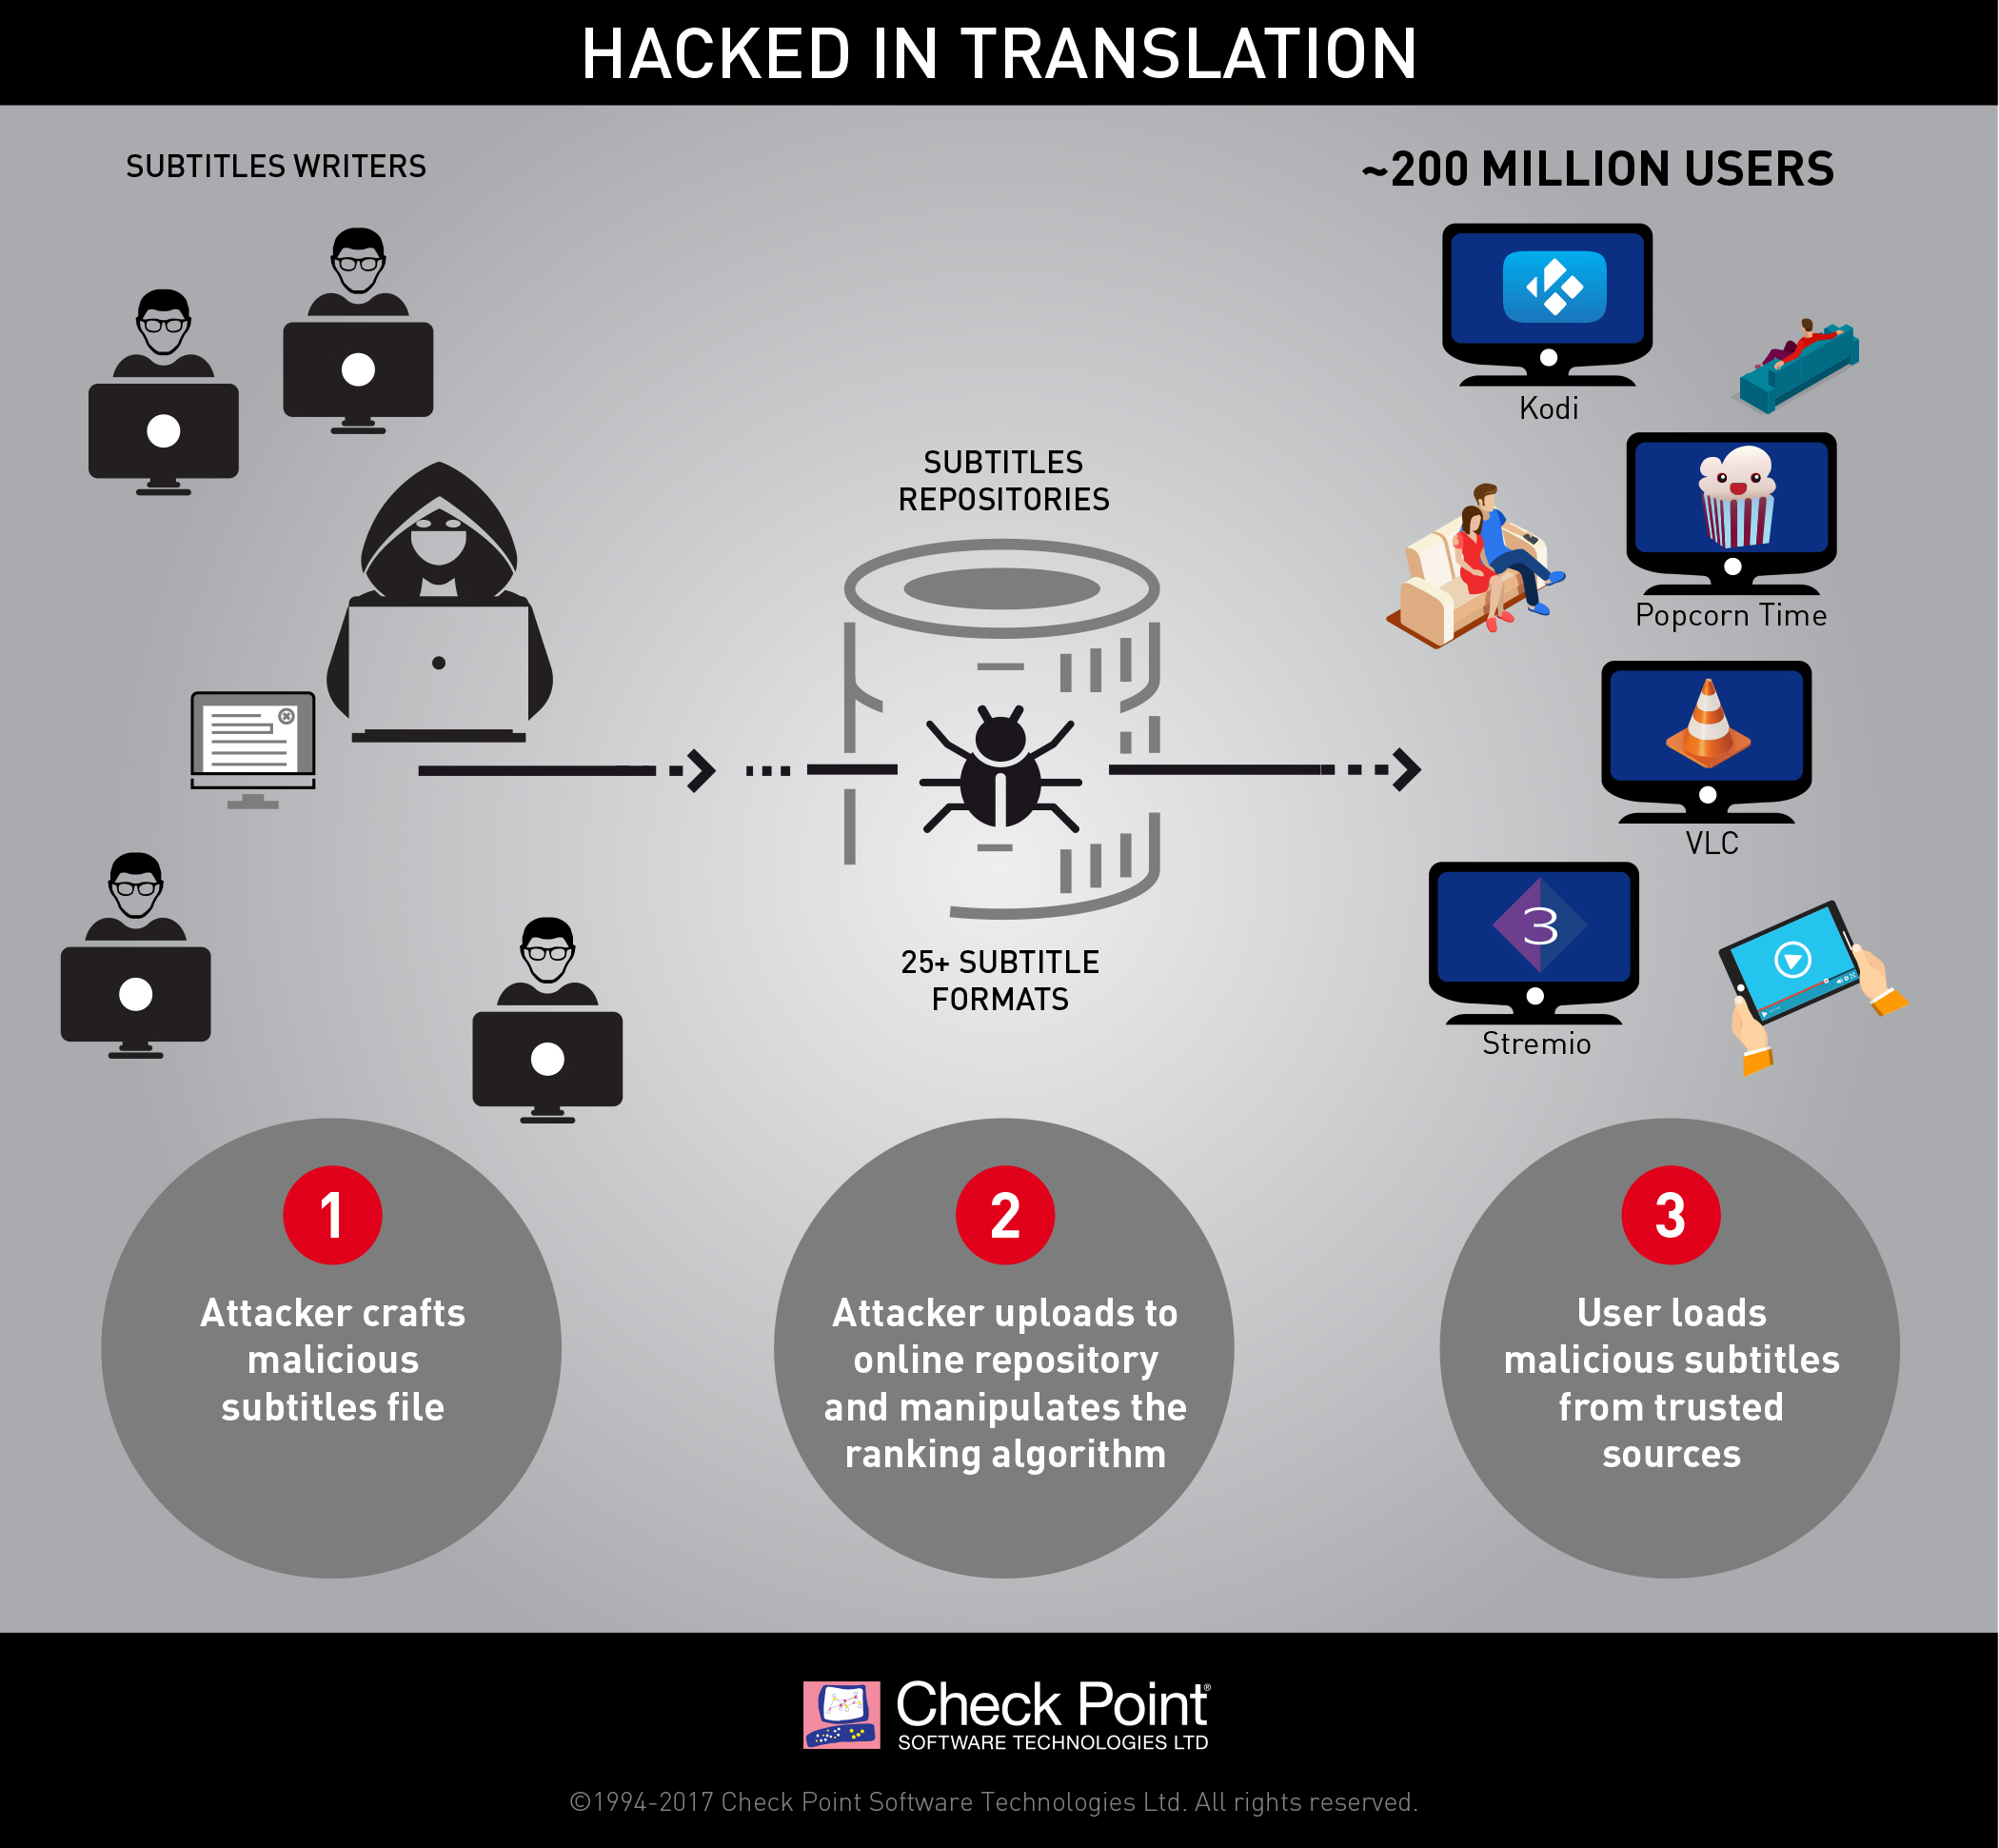 Hacked In Translation infographic